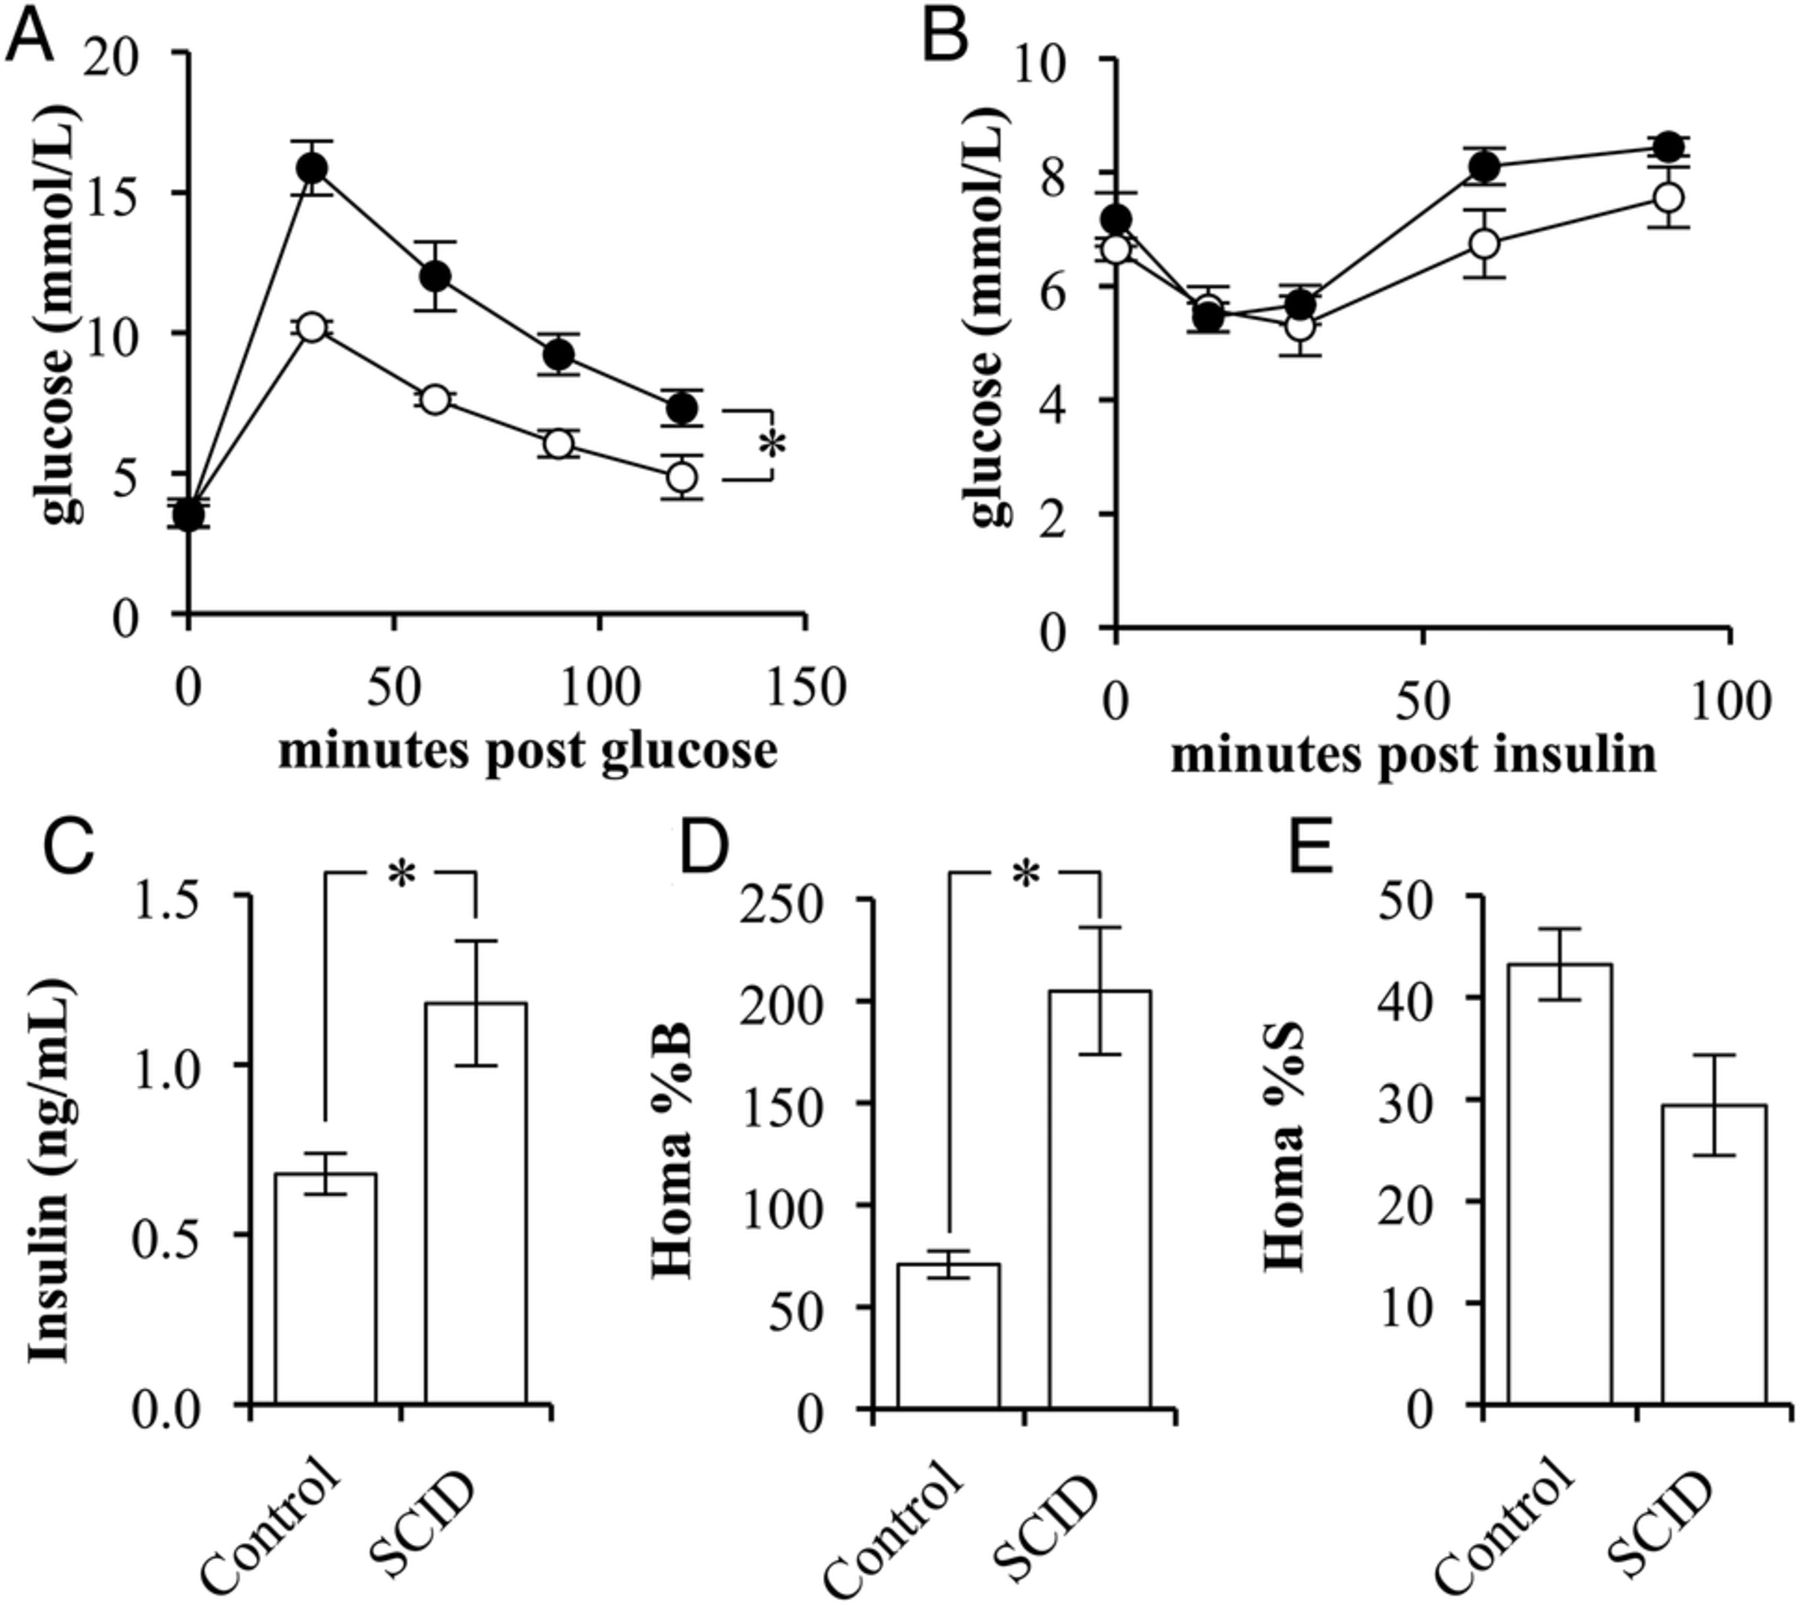 a role of the adaptive immune system in glucose homeostasis bmj